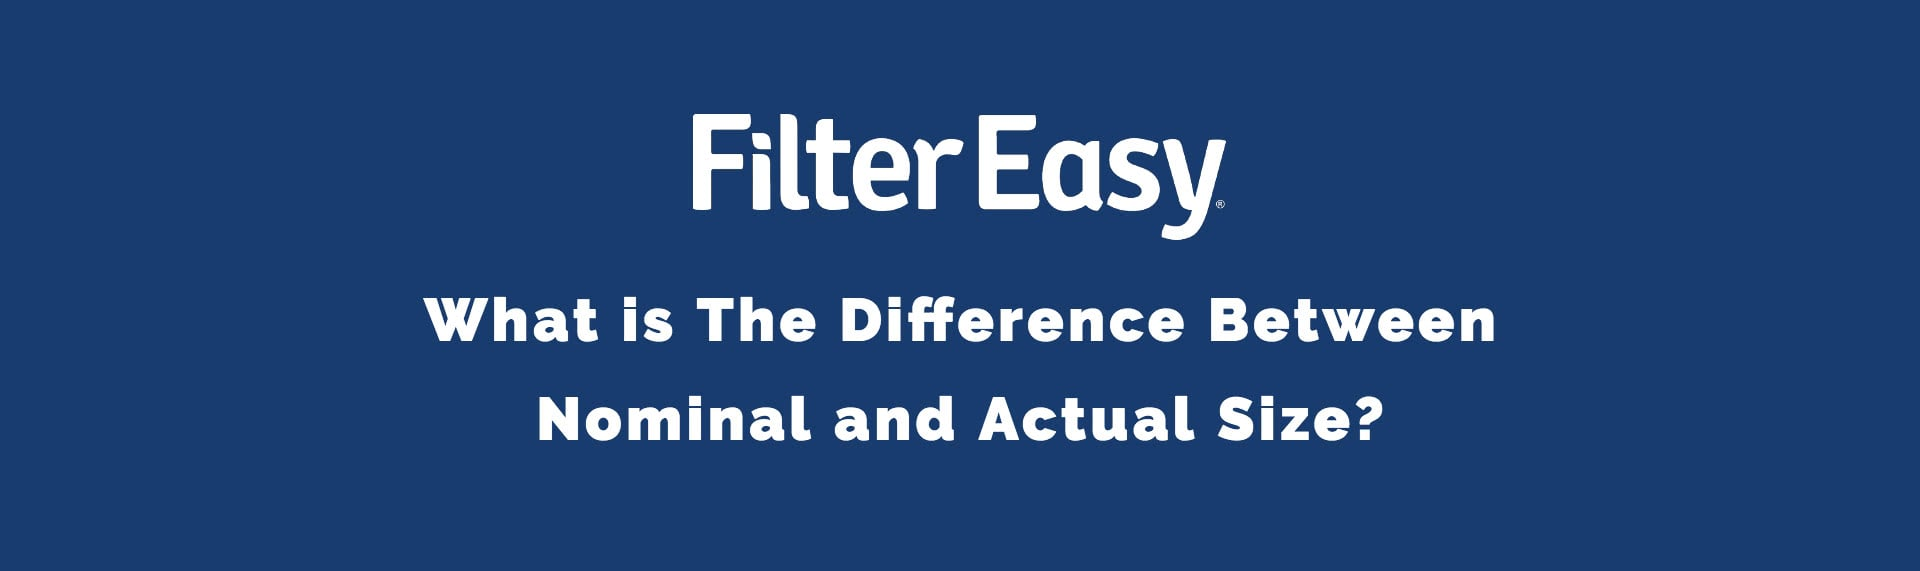 nominal size air filters, actual size air filters, acutal size filter, nominal size filter